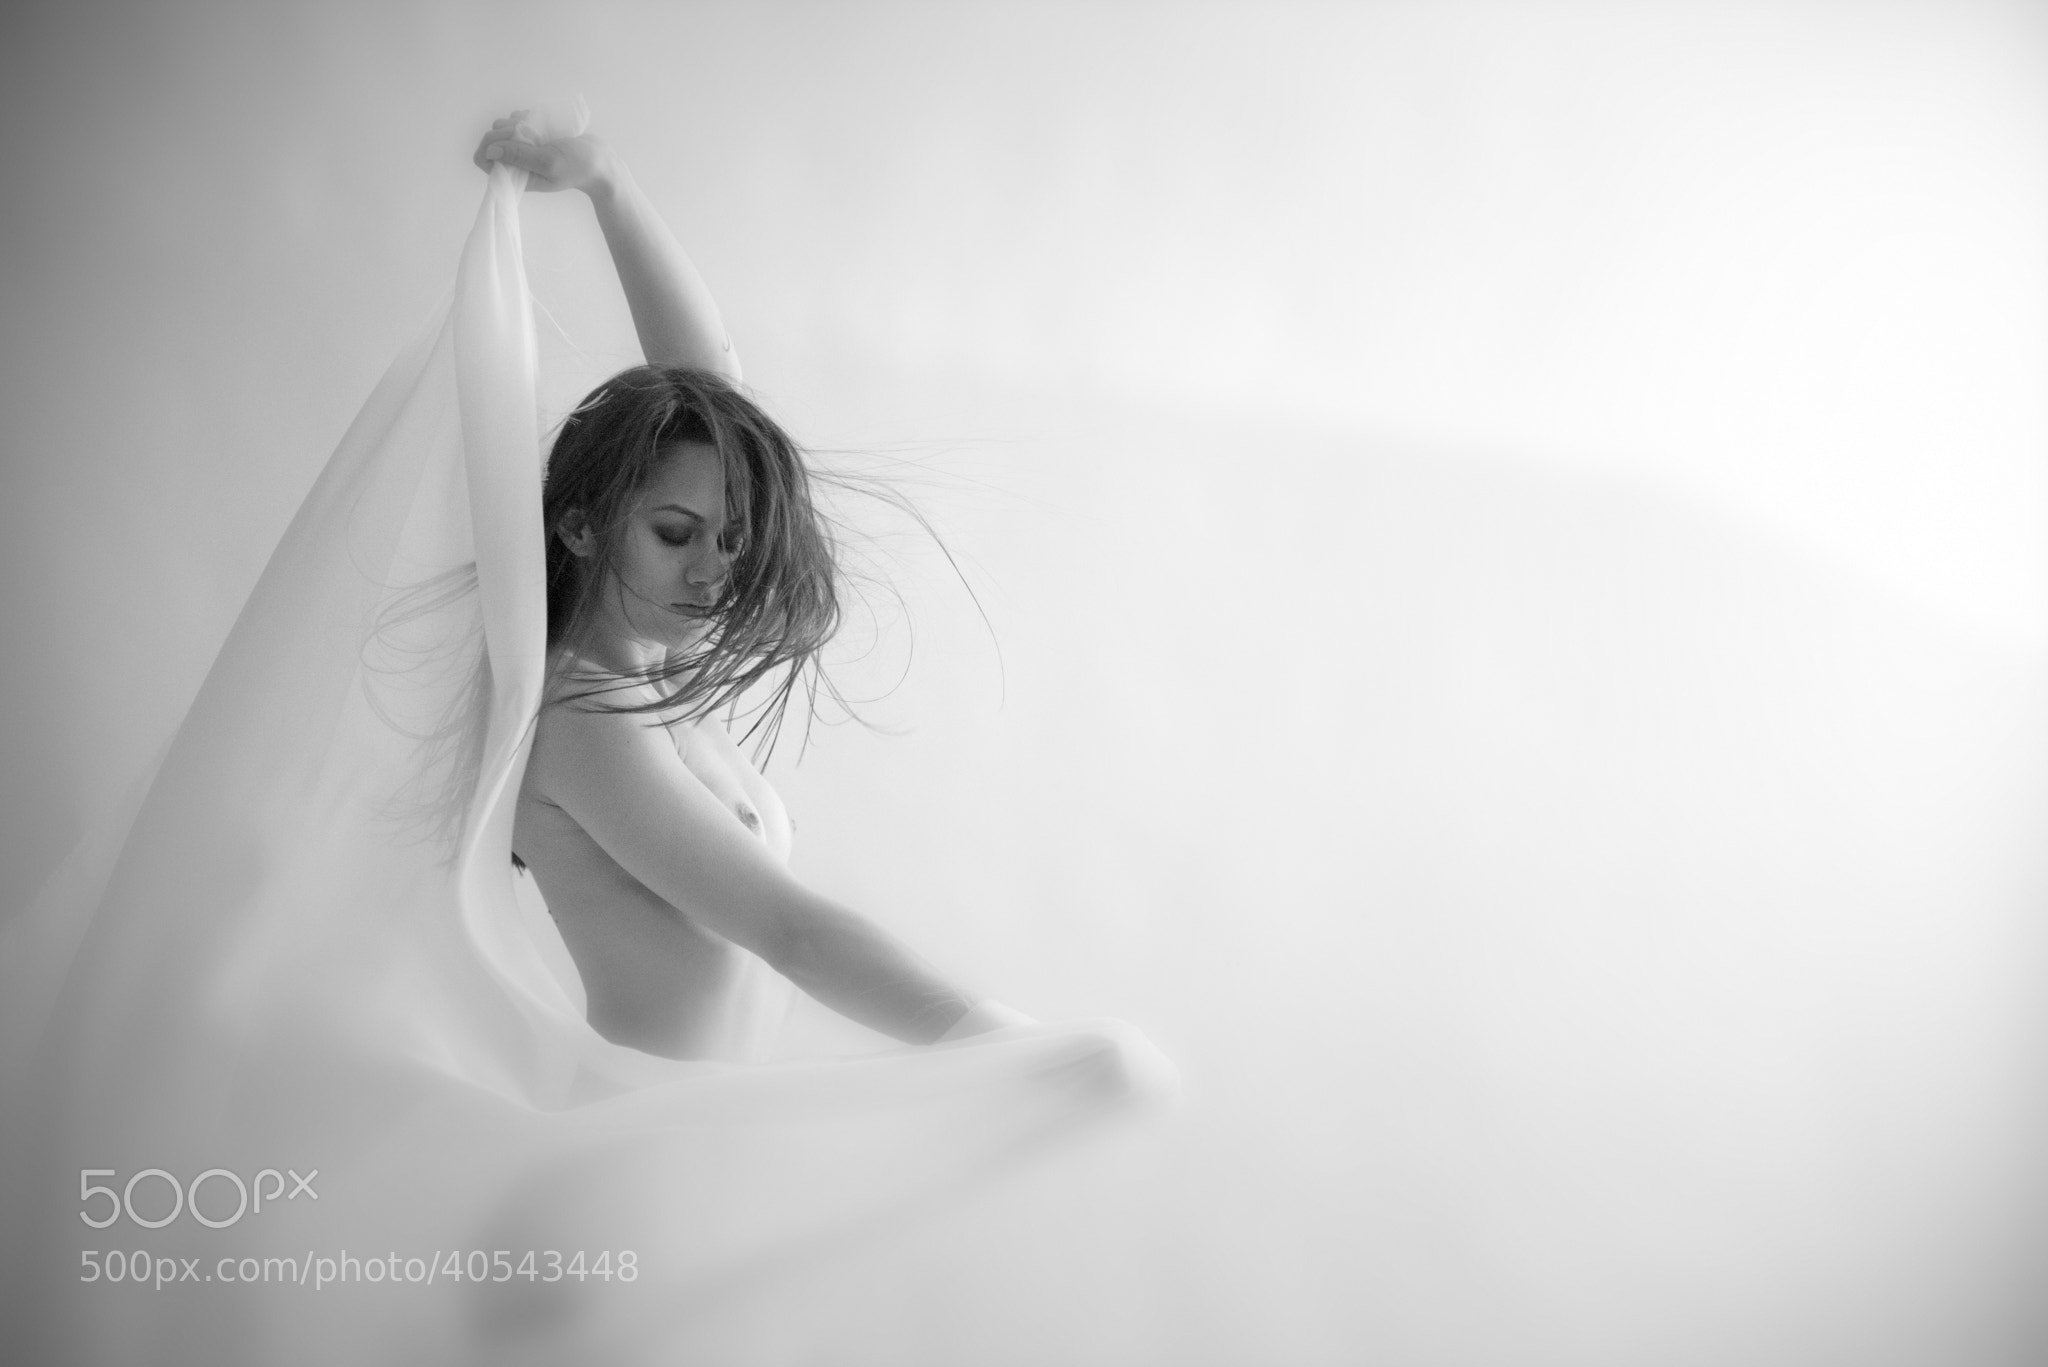 Photograph Lightness by Smileandshoot on 500px